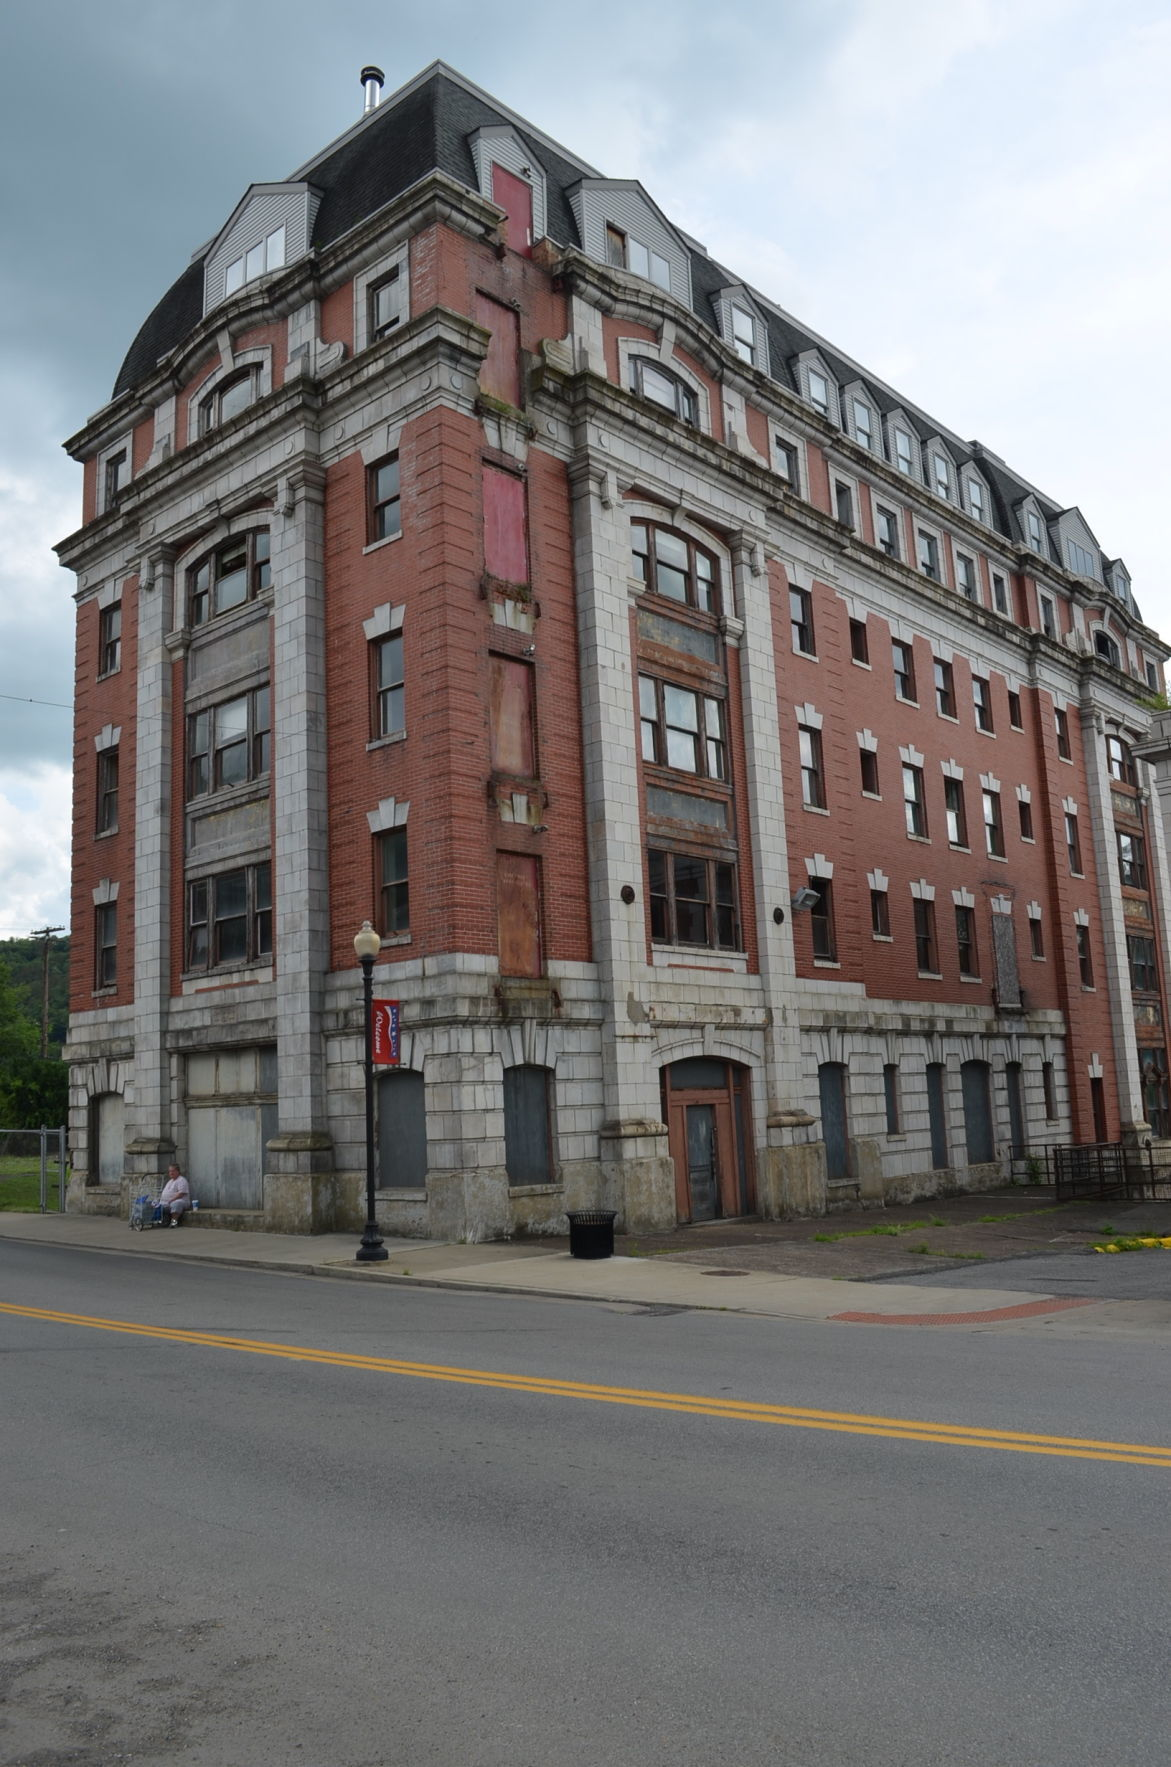 Left The Willard Hotel On Grafton S East Main Street Has Been Mothballed By Vandalia Heritage Foundation For Future Redevelopment